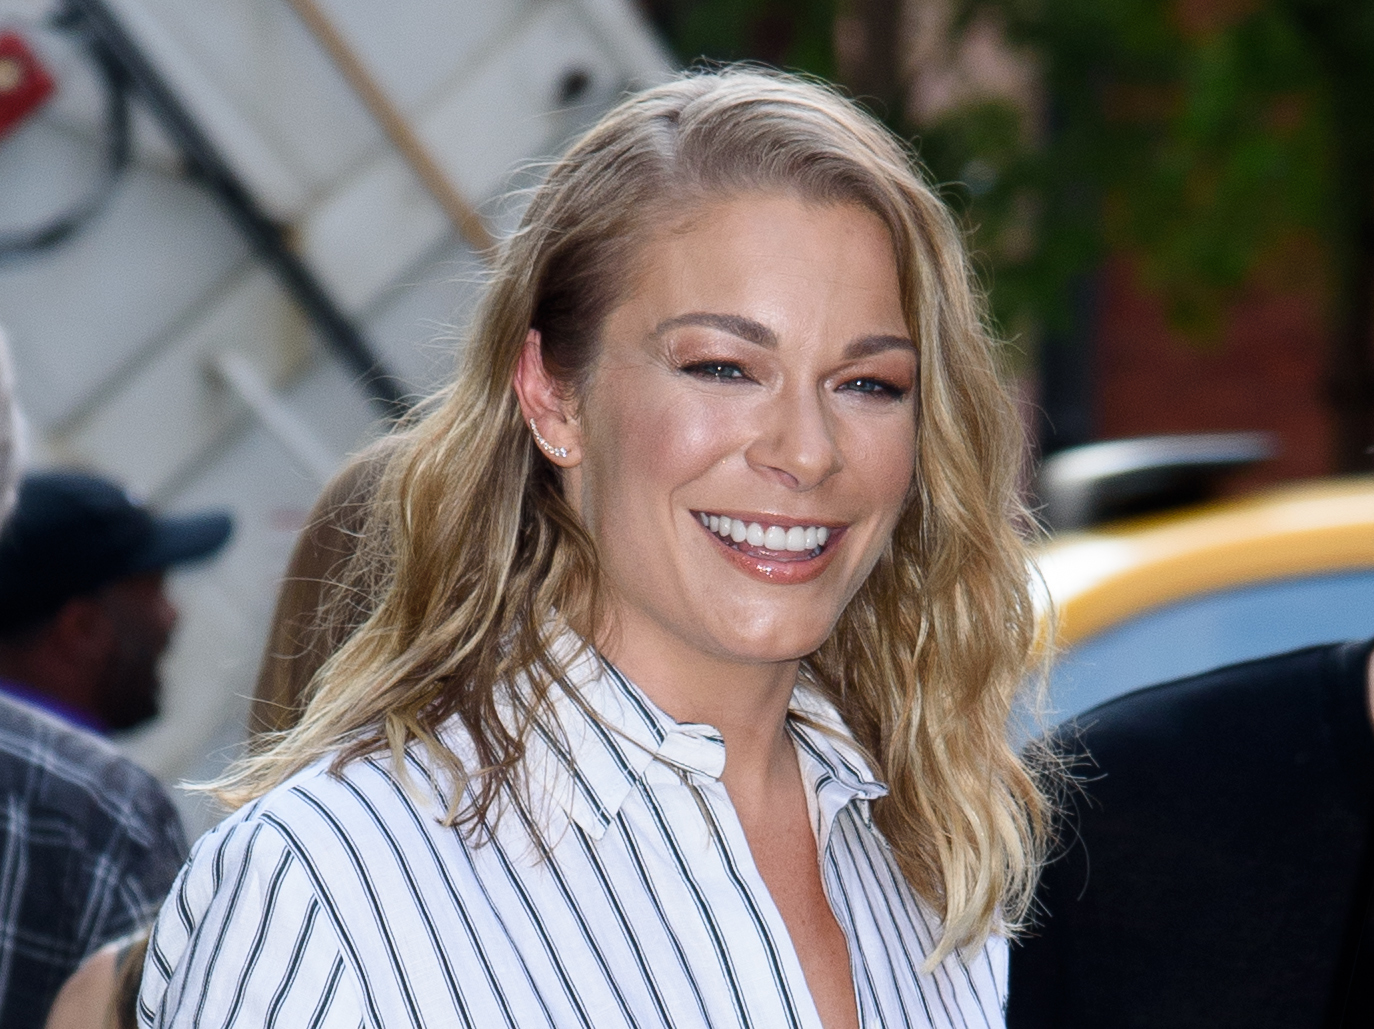 LeAnn Rimes attends the AOL Build in New York City on Aug. 18, 2017.